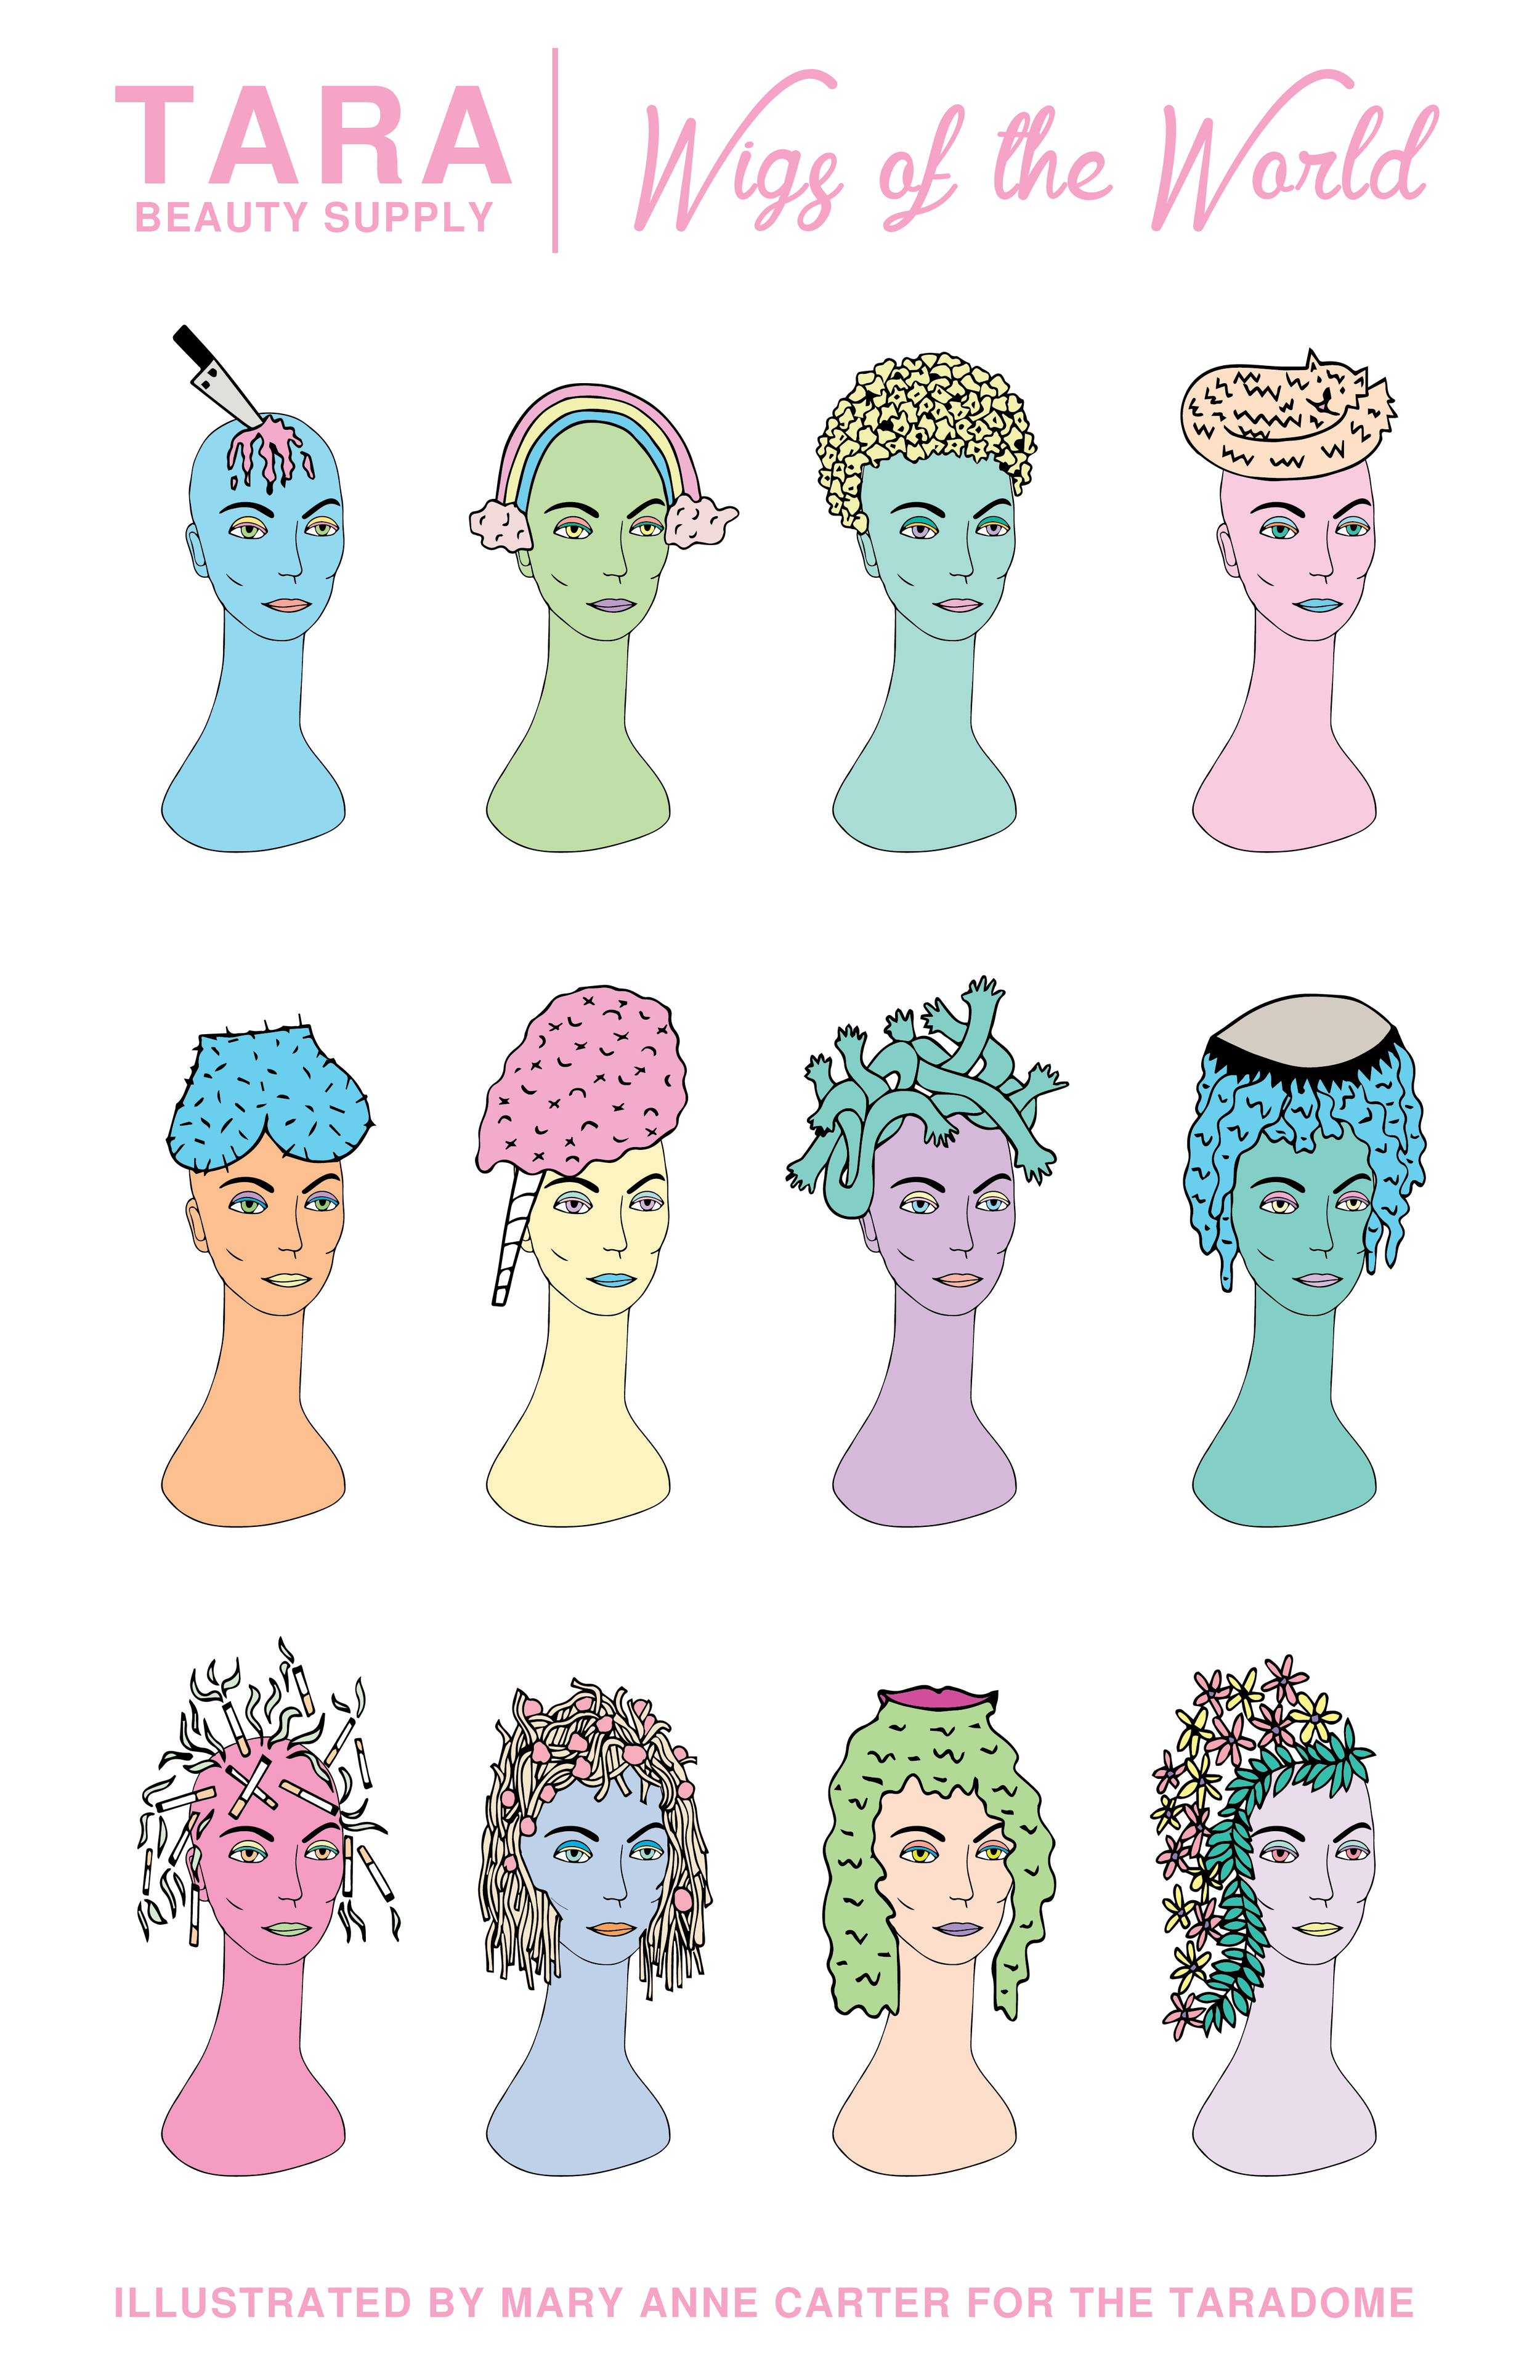 wigs of the world-01.png